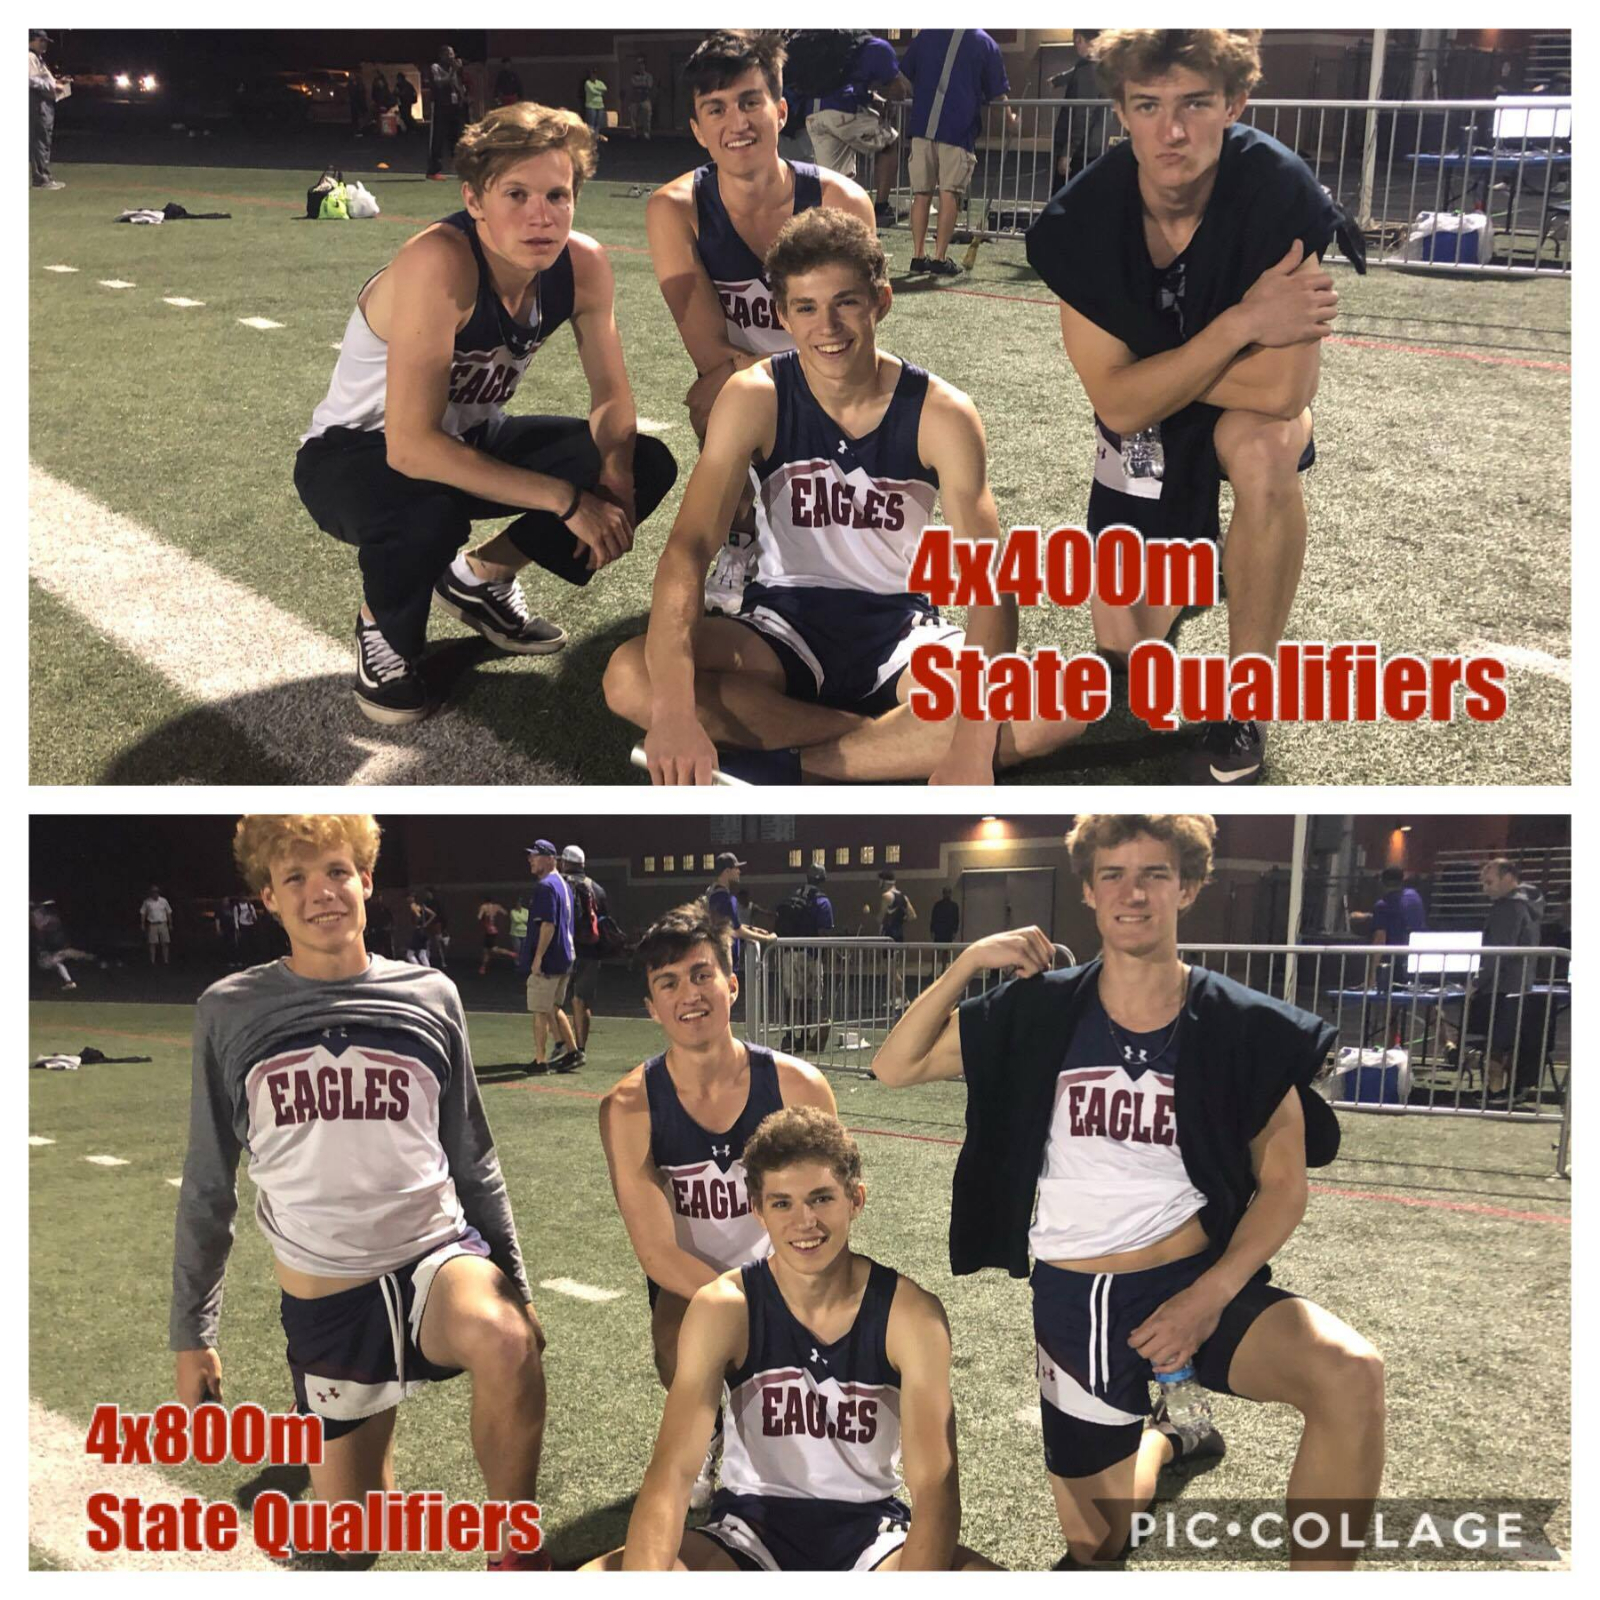 State Qualifying AP High School Boys Relay Teams Lead the Pack!